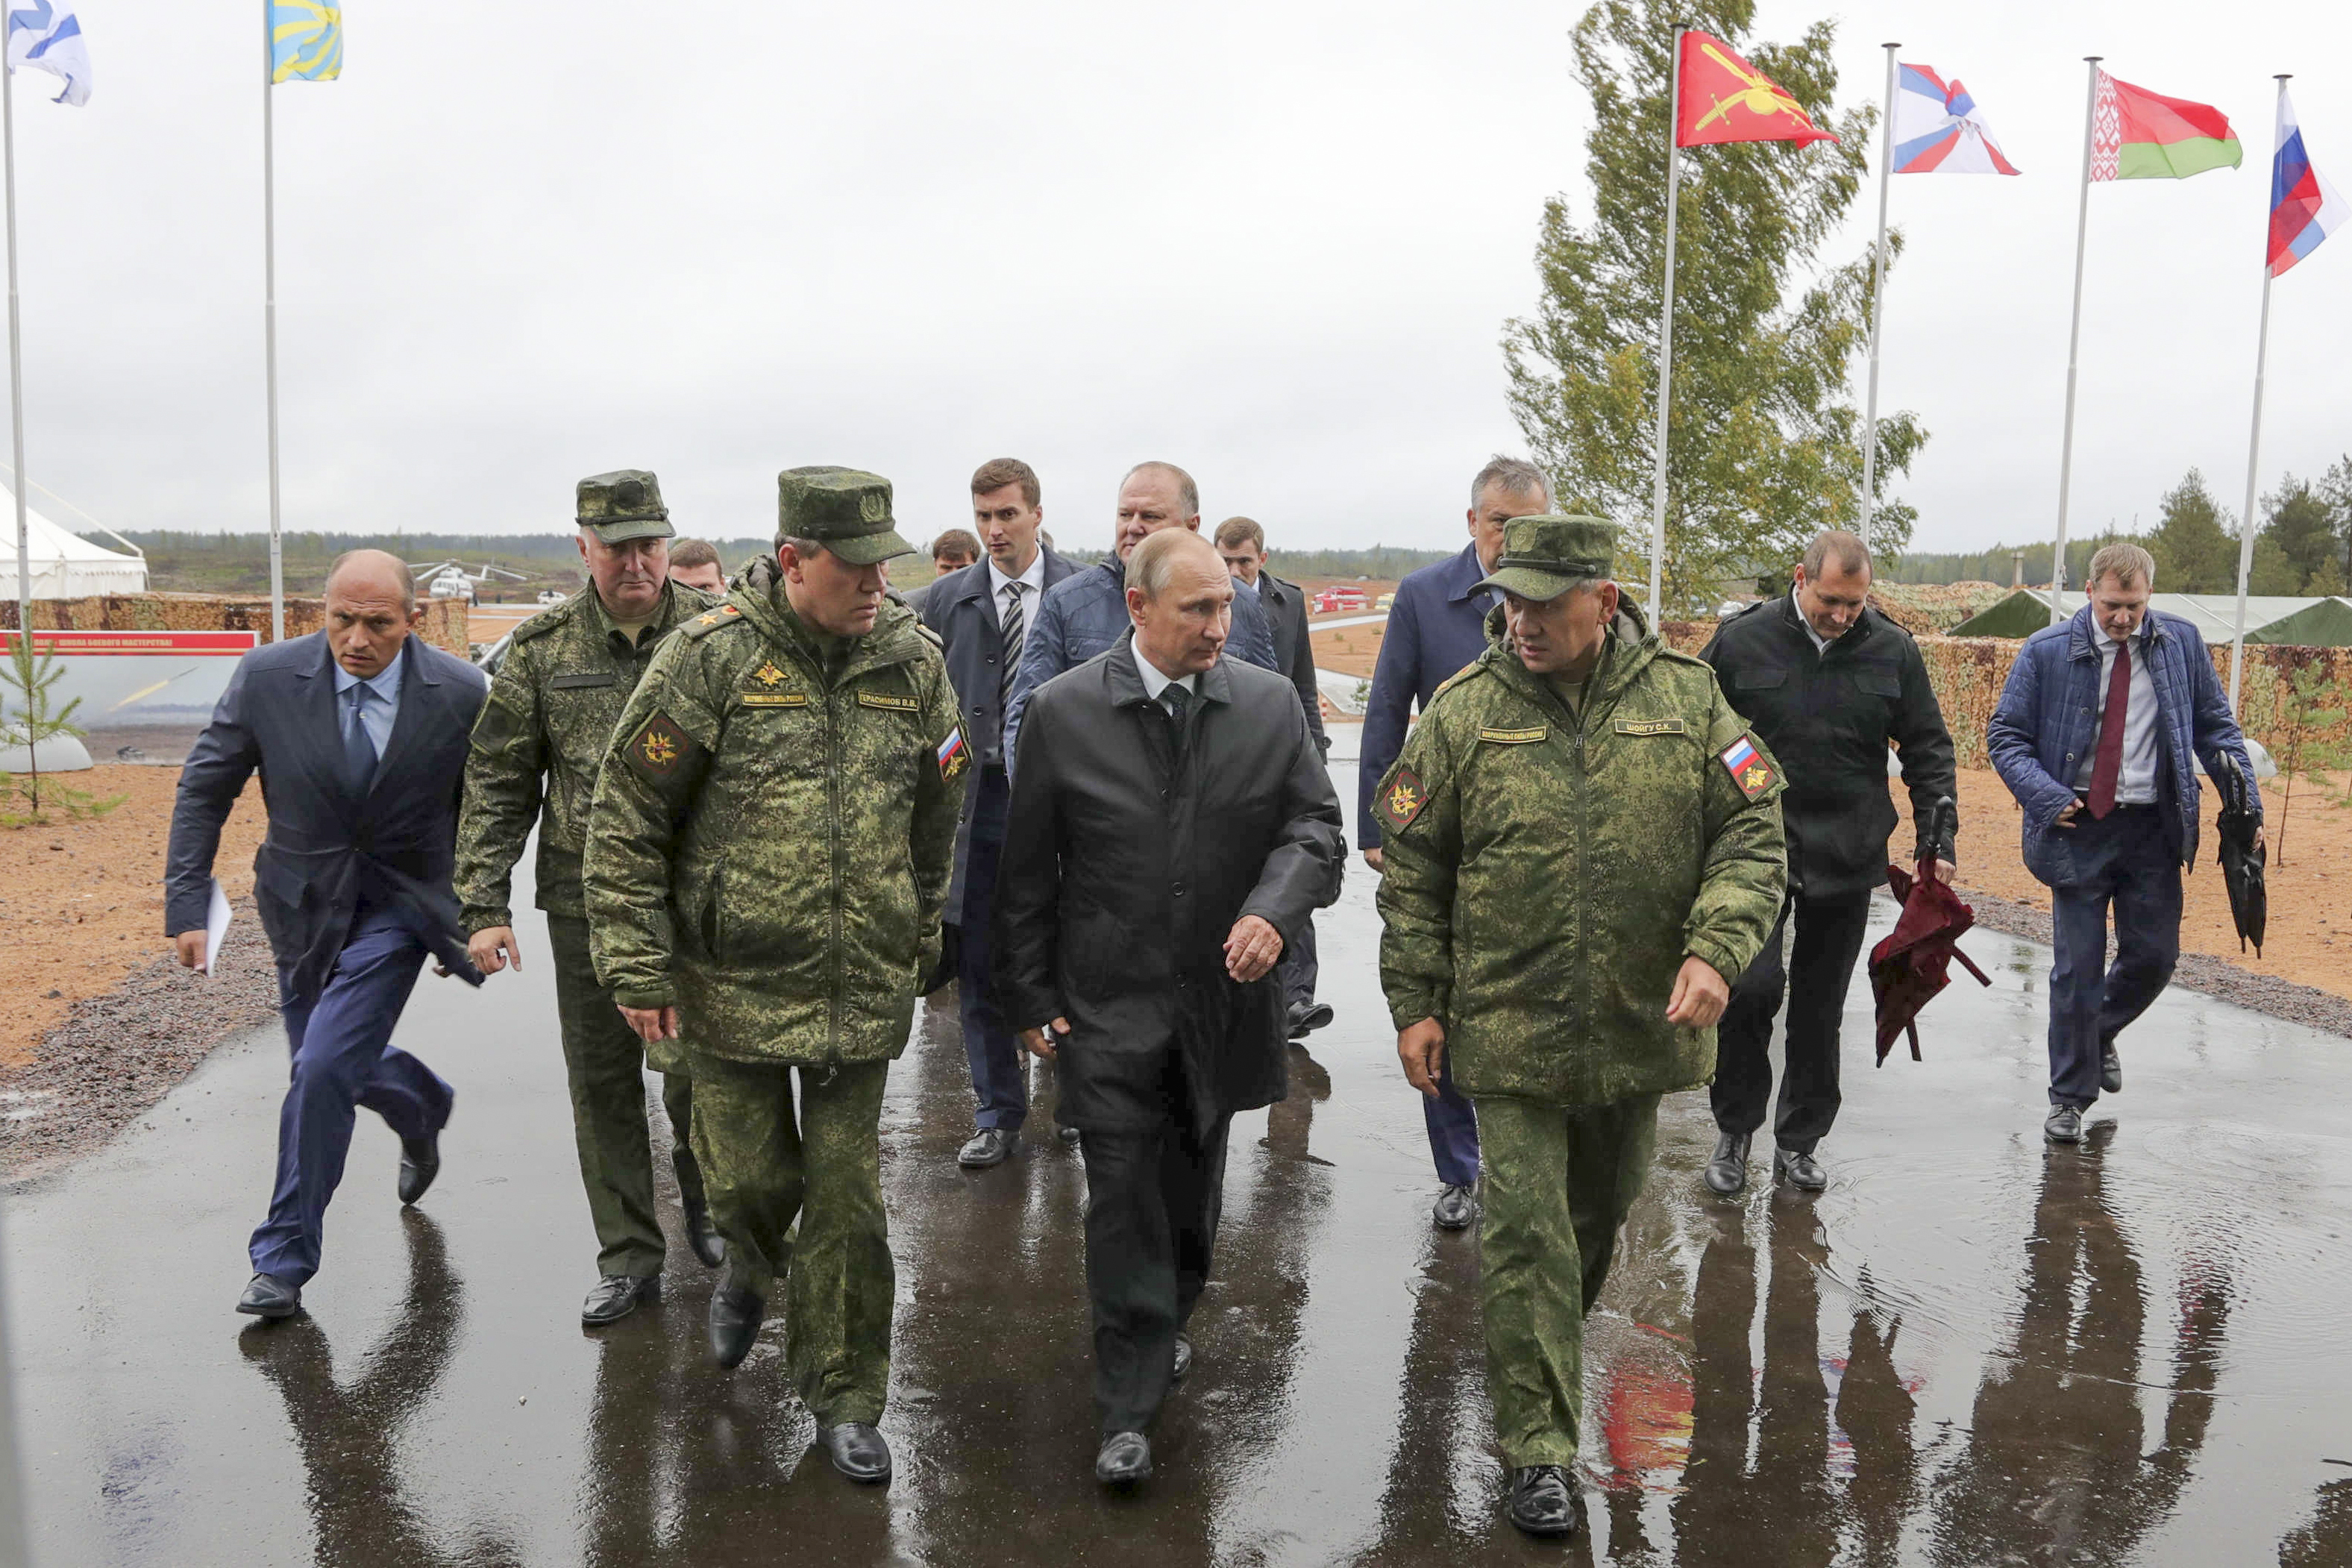 Russian President Vladimir Putin, center, walks with defense officials to attend a military exercise at a training ground at the Luzhsky Range, near St. Petersburg, Russia, on Sept. 18, 2017. (Sputnik/Kremlin Pool via AP)